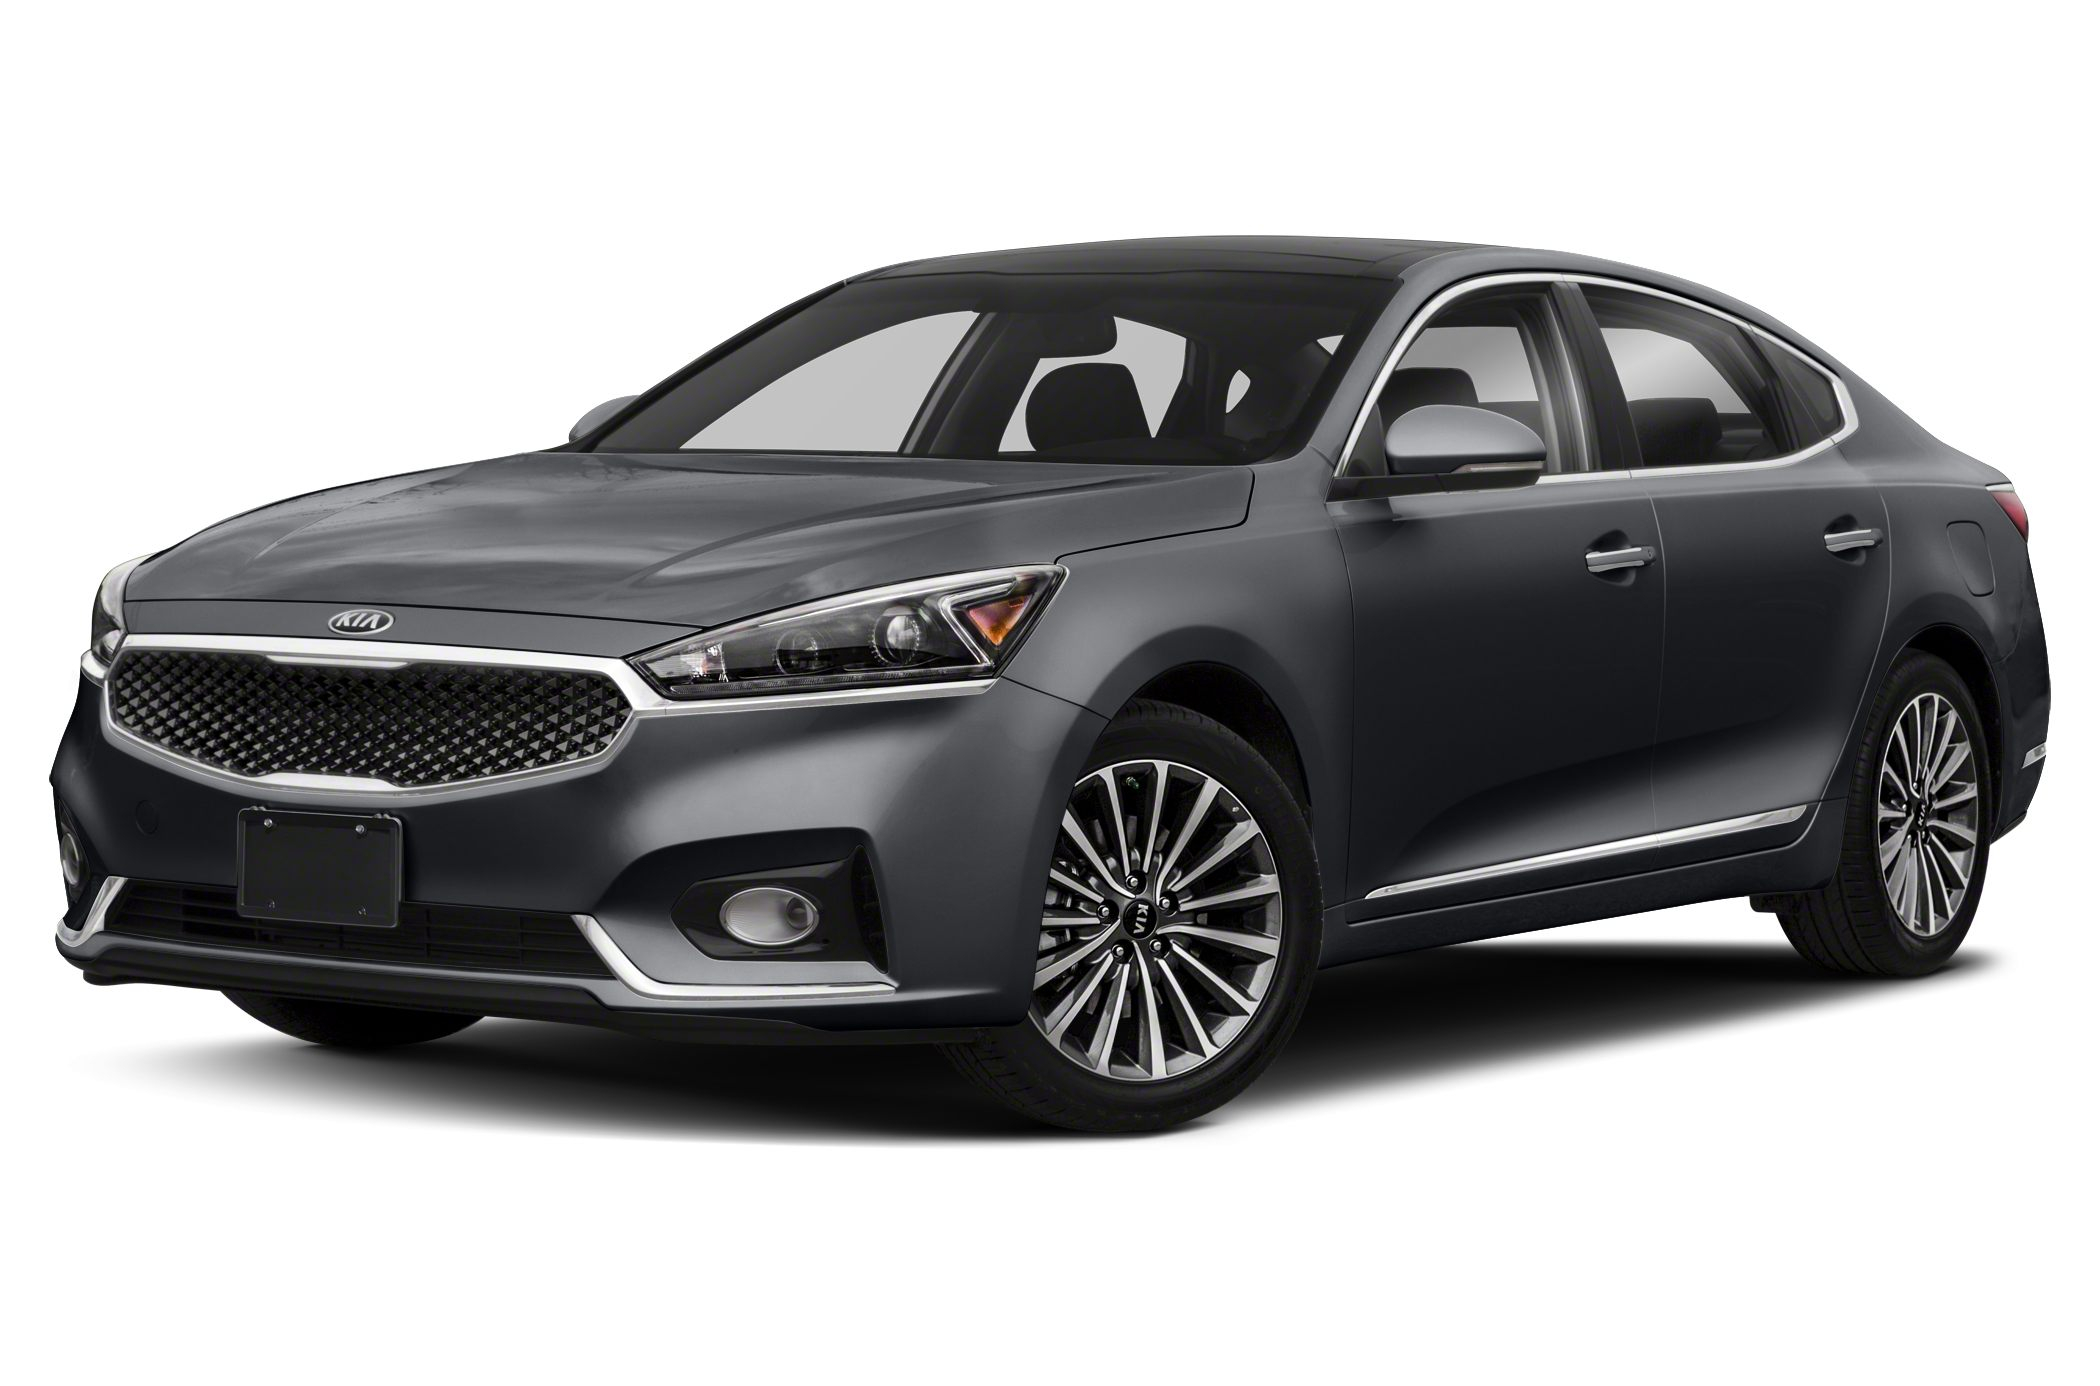 USC70KIC151A021001 Cool Review About 2017 Kia Cadenza Release Date